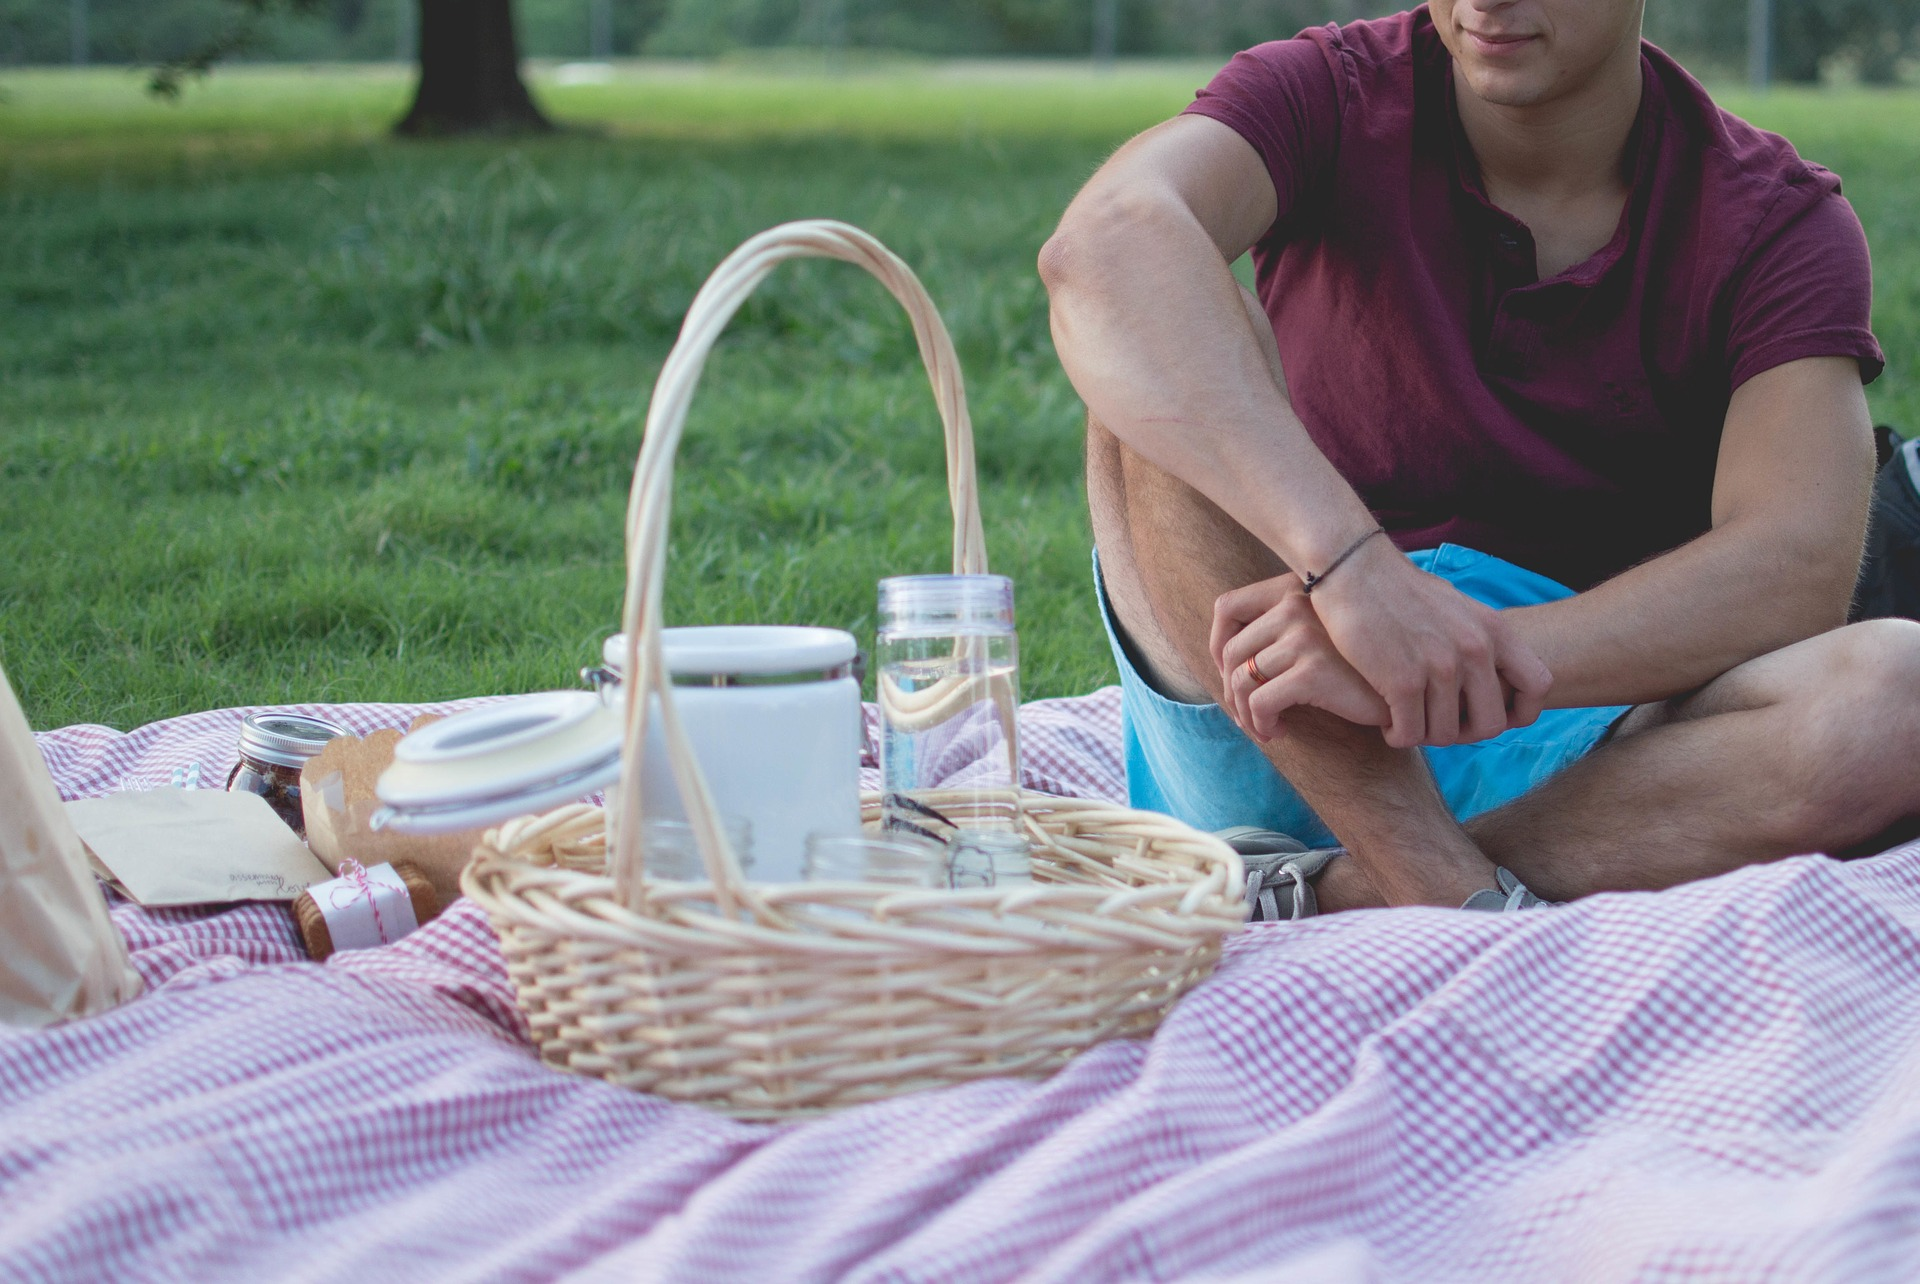 picnic with hermetic Containers